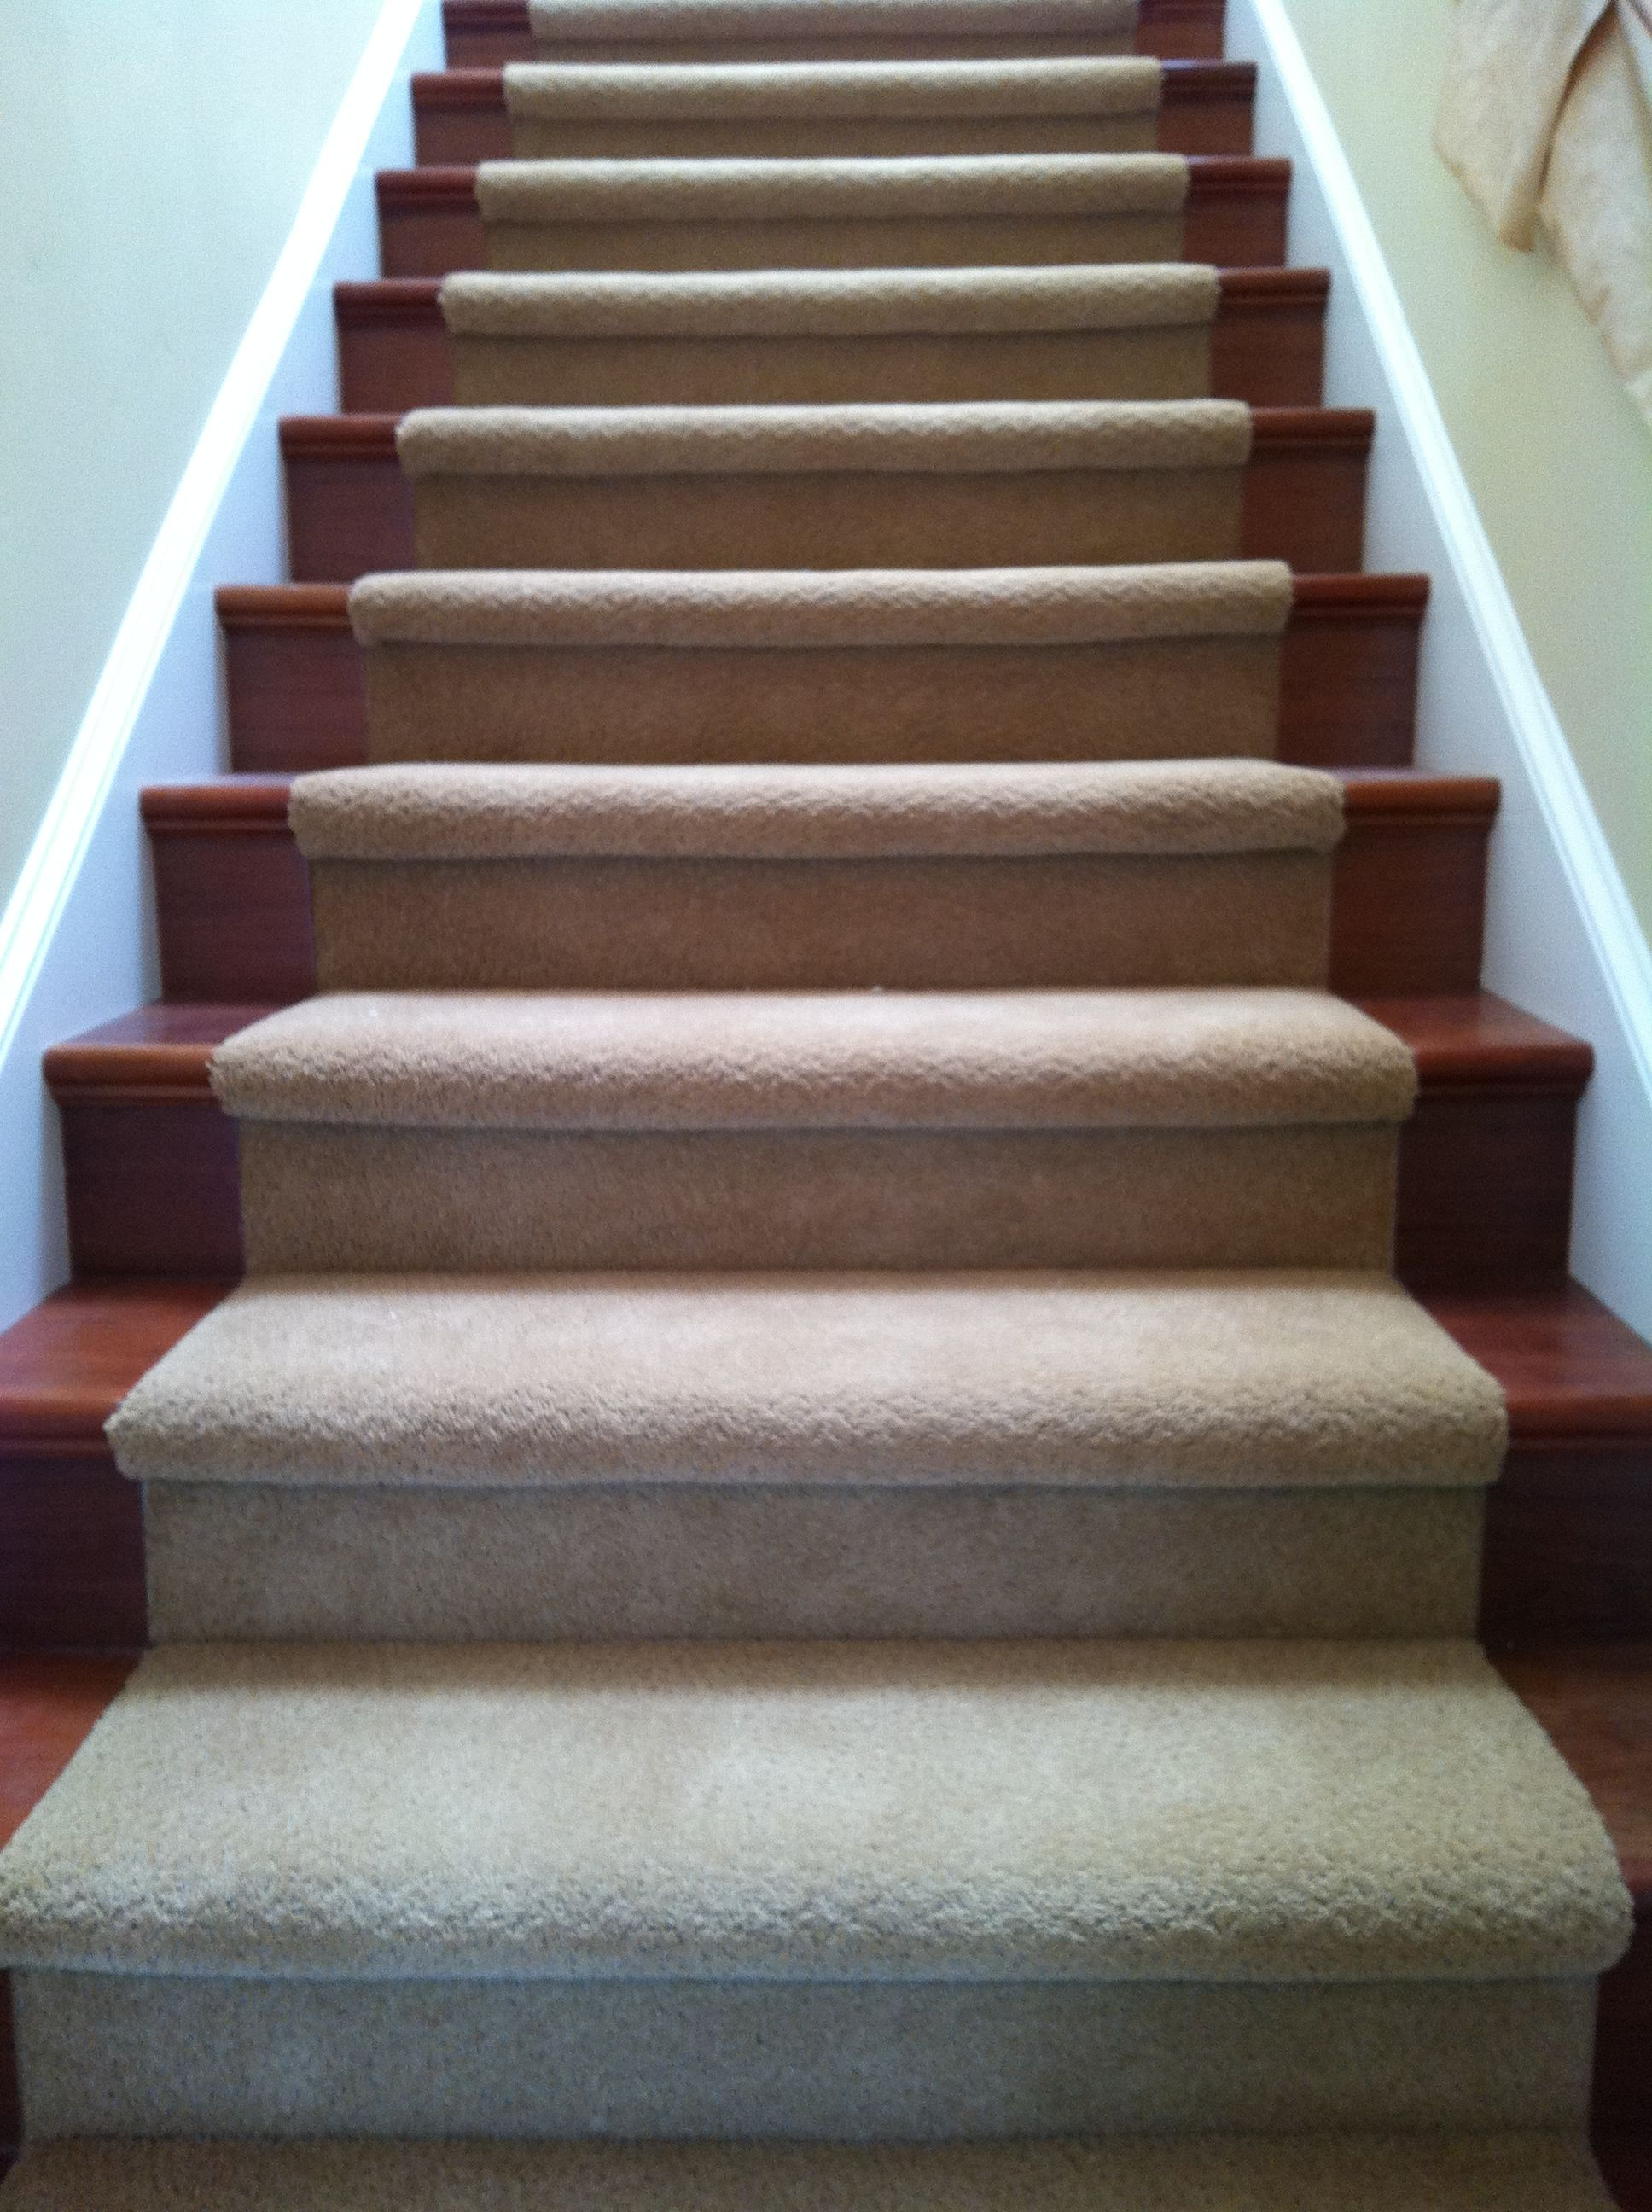 Here's a great example of hardwood stairs with carpet